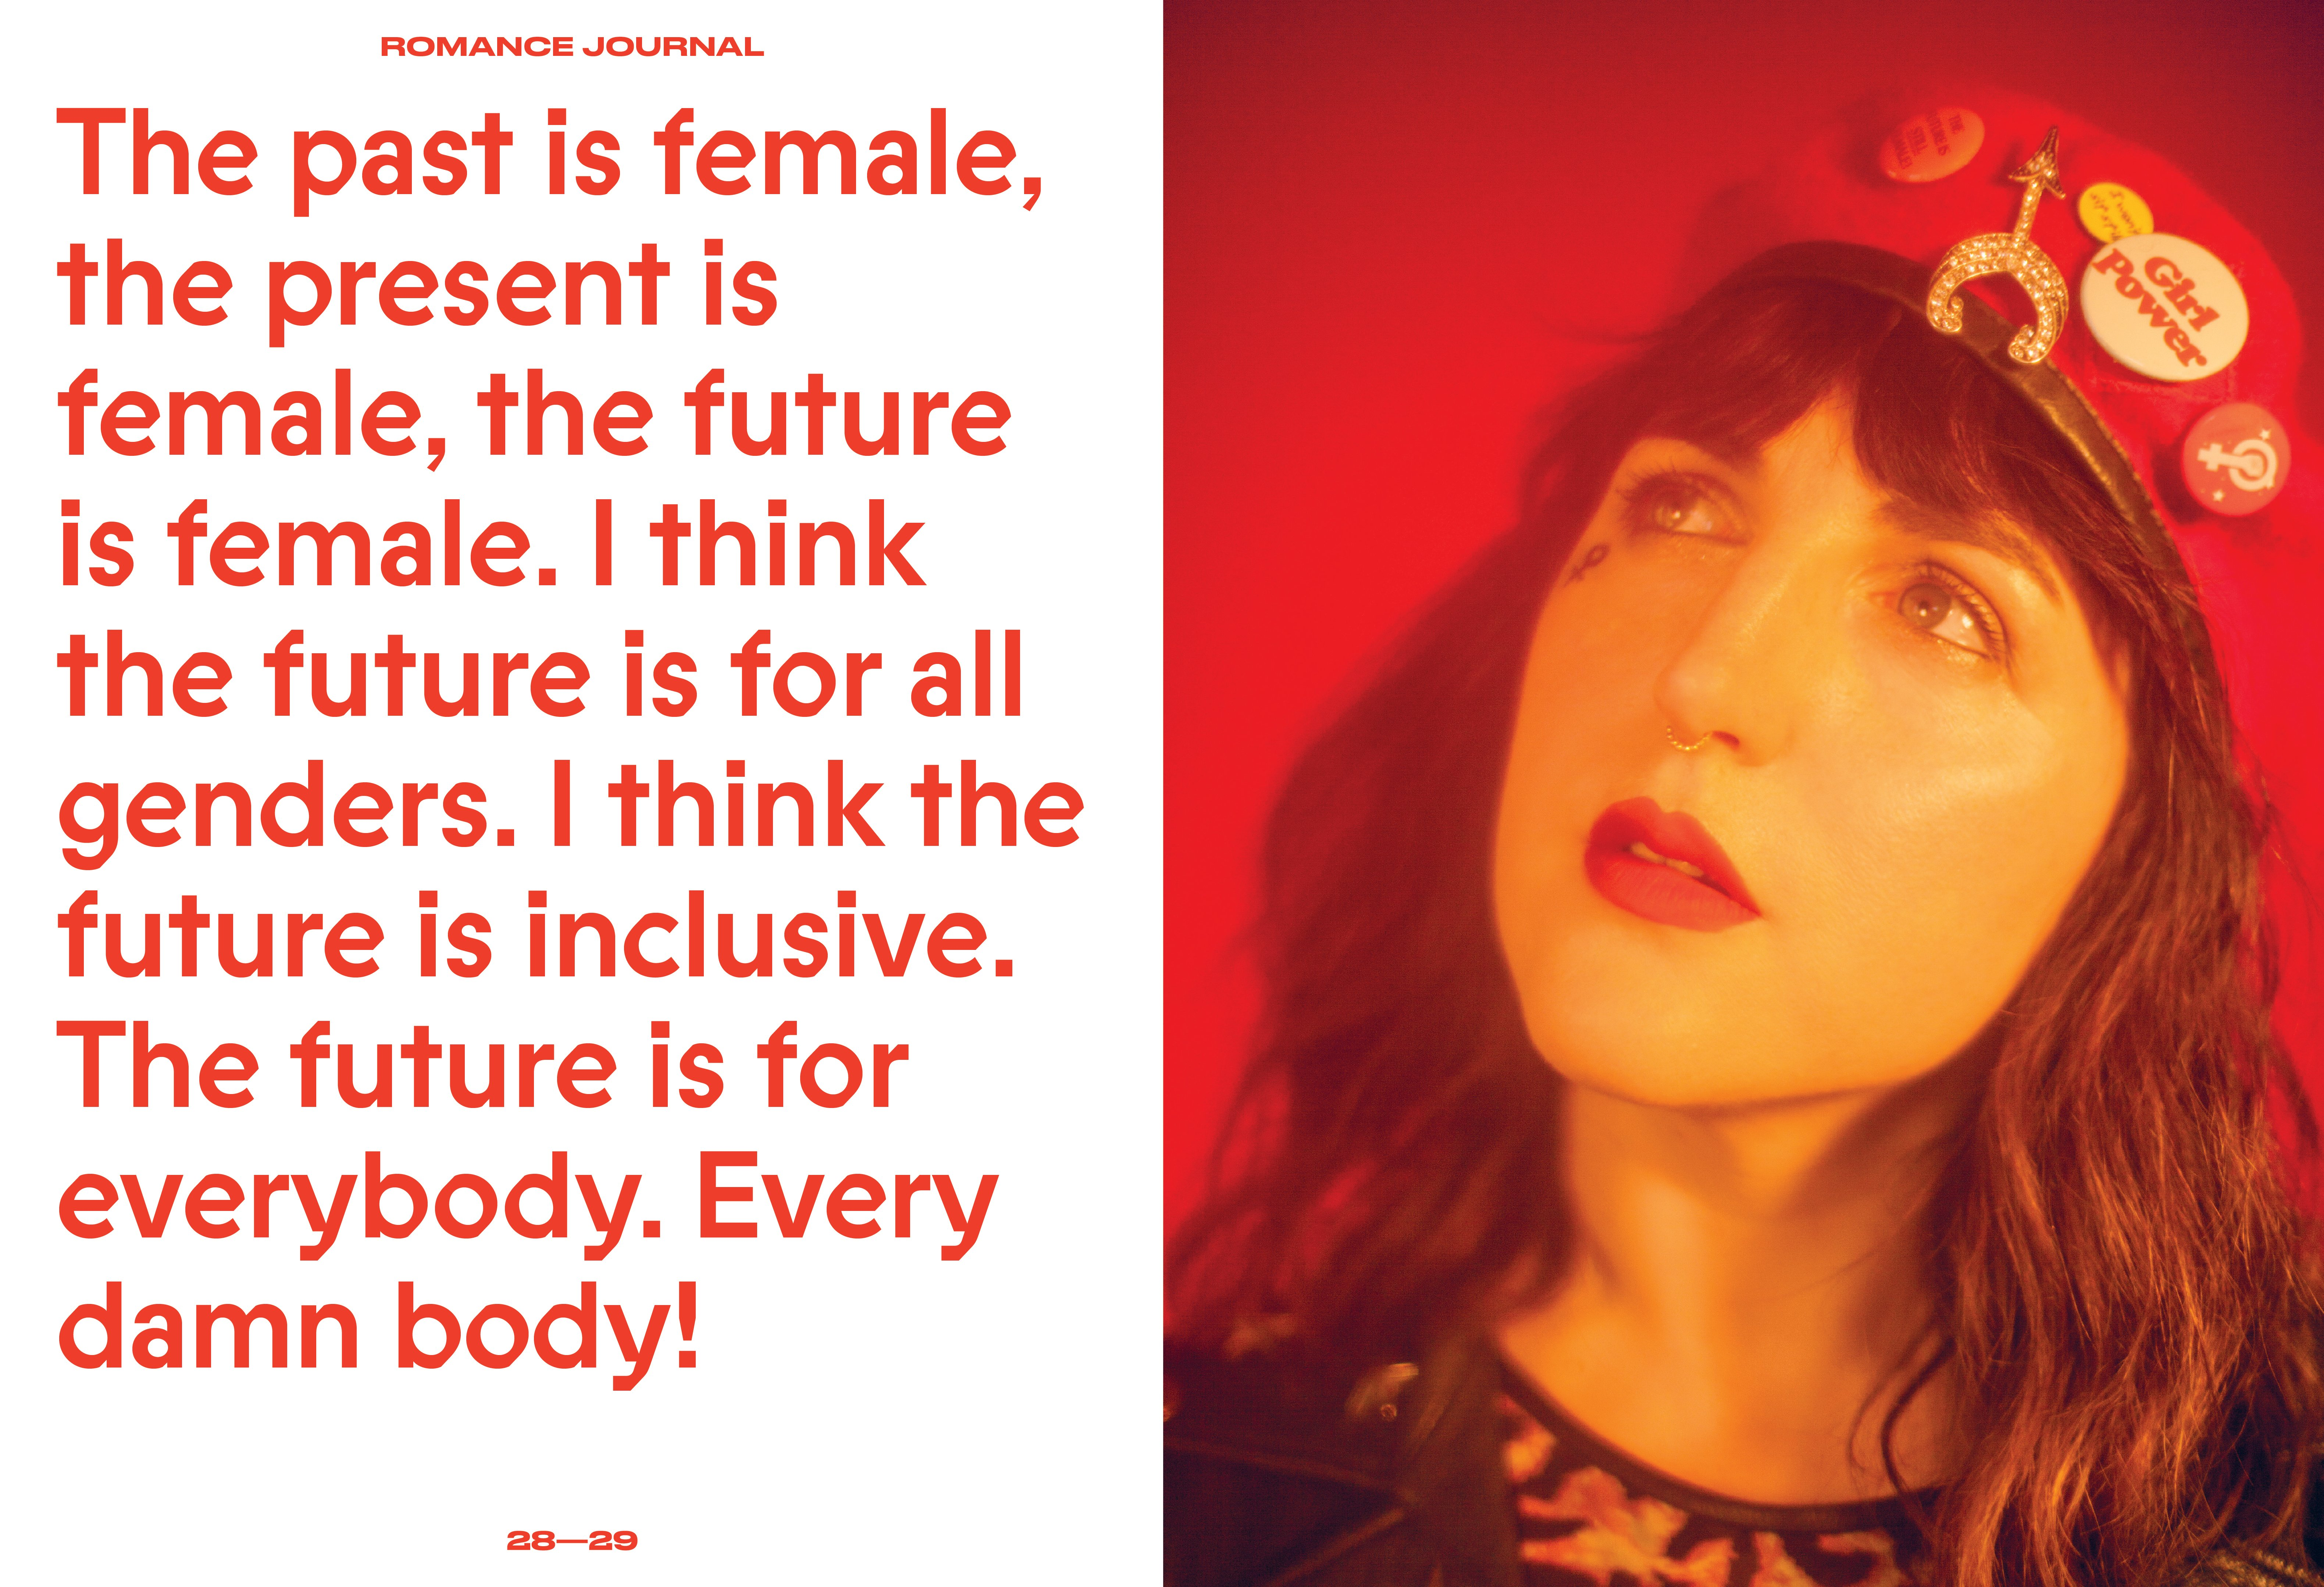 The past is female, the present is female the future is female. I think the future is for all genders. I think the future is inclusive. The future is for everybody. Every damn body! – quote by Piera Gelardi, co-founder of Refinery29 for Romance Journal Issue 02 Resistance. Publication design, art direction, print design, interviews by RoAndCo.